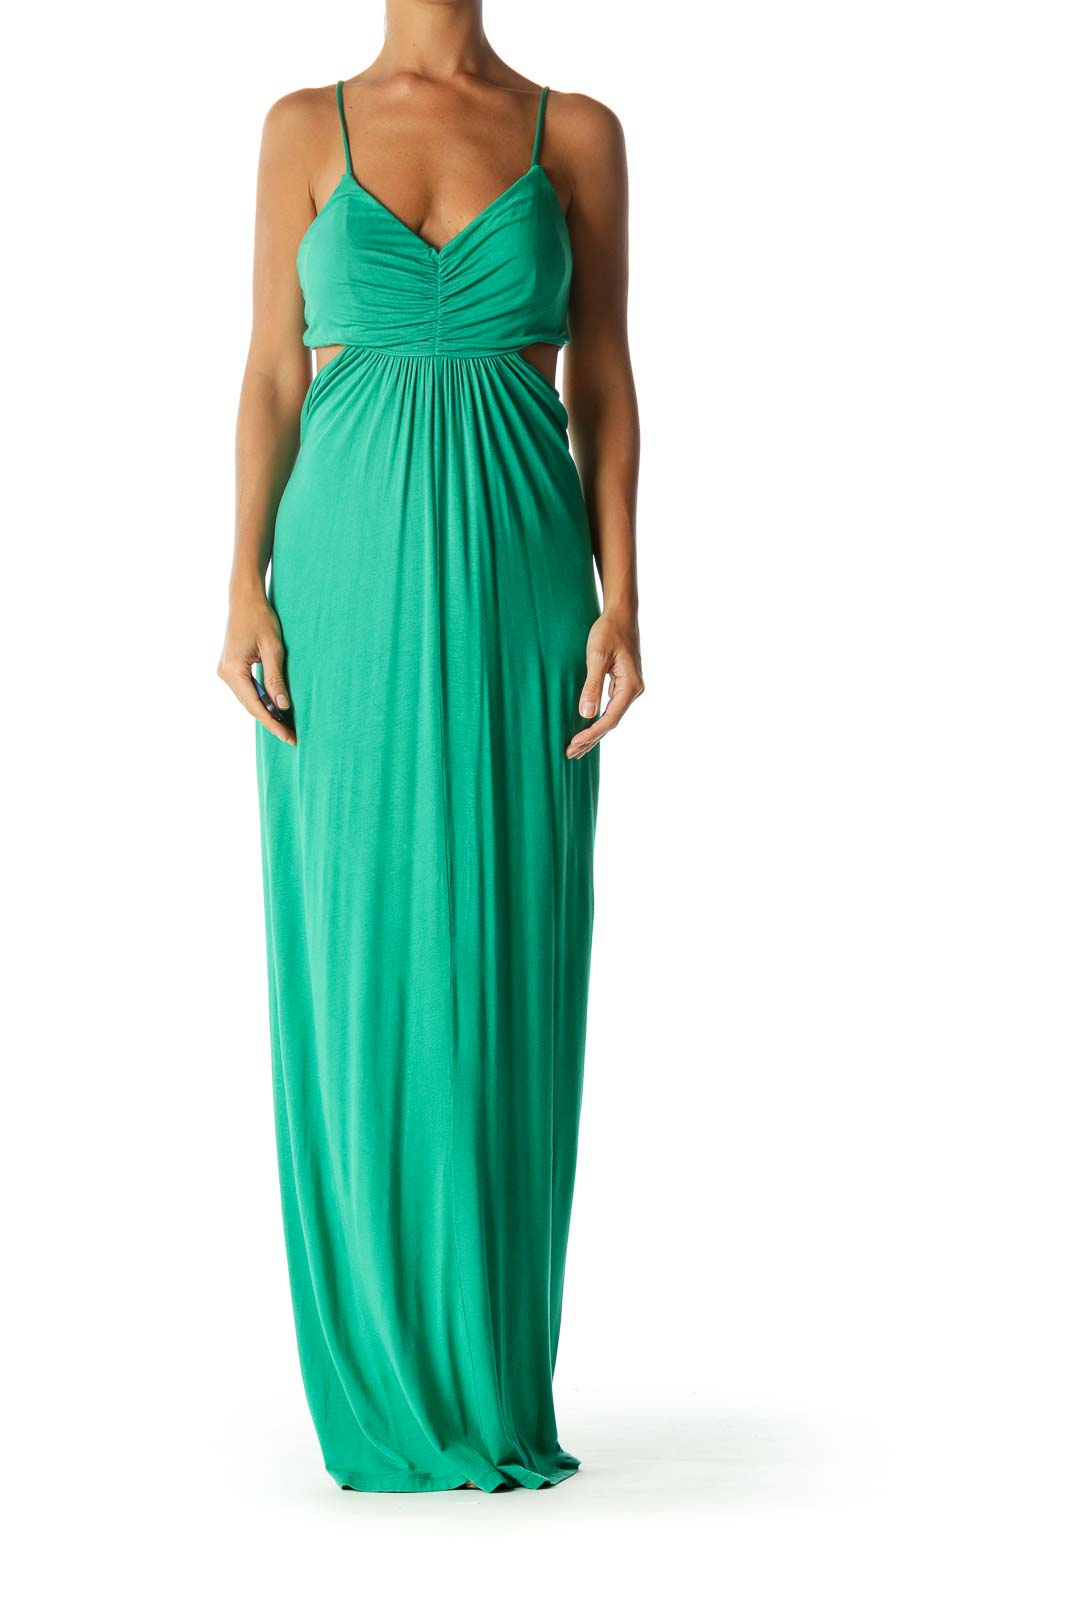 Green V-Neck Cut-Out Ruched Bust Detail Stretch Maxi Dress